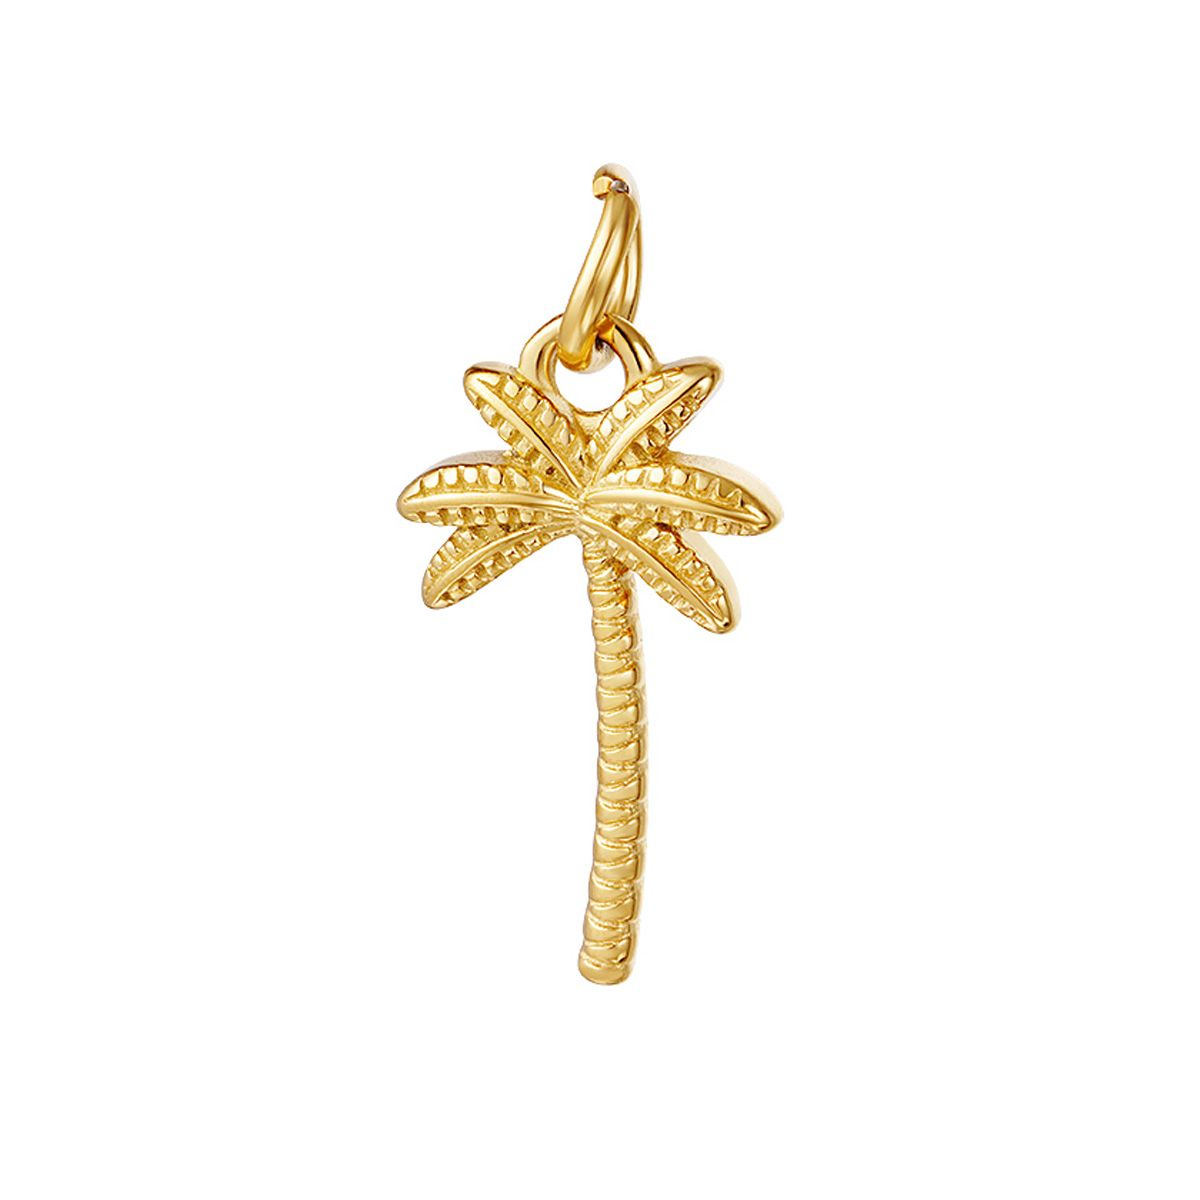 Vintage Inspired Palm Charm